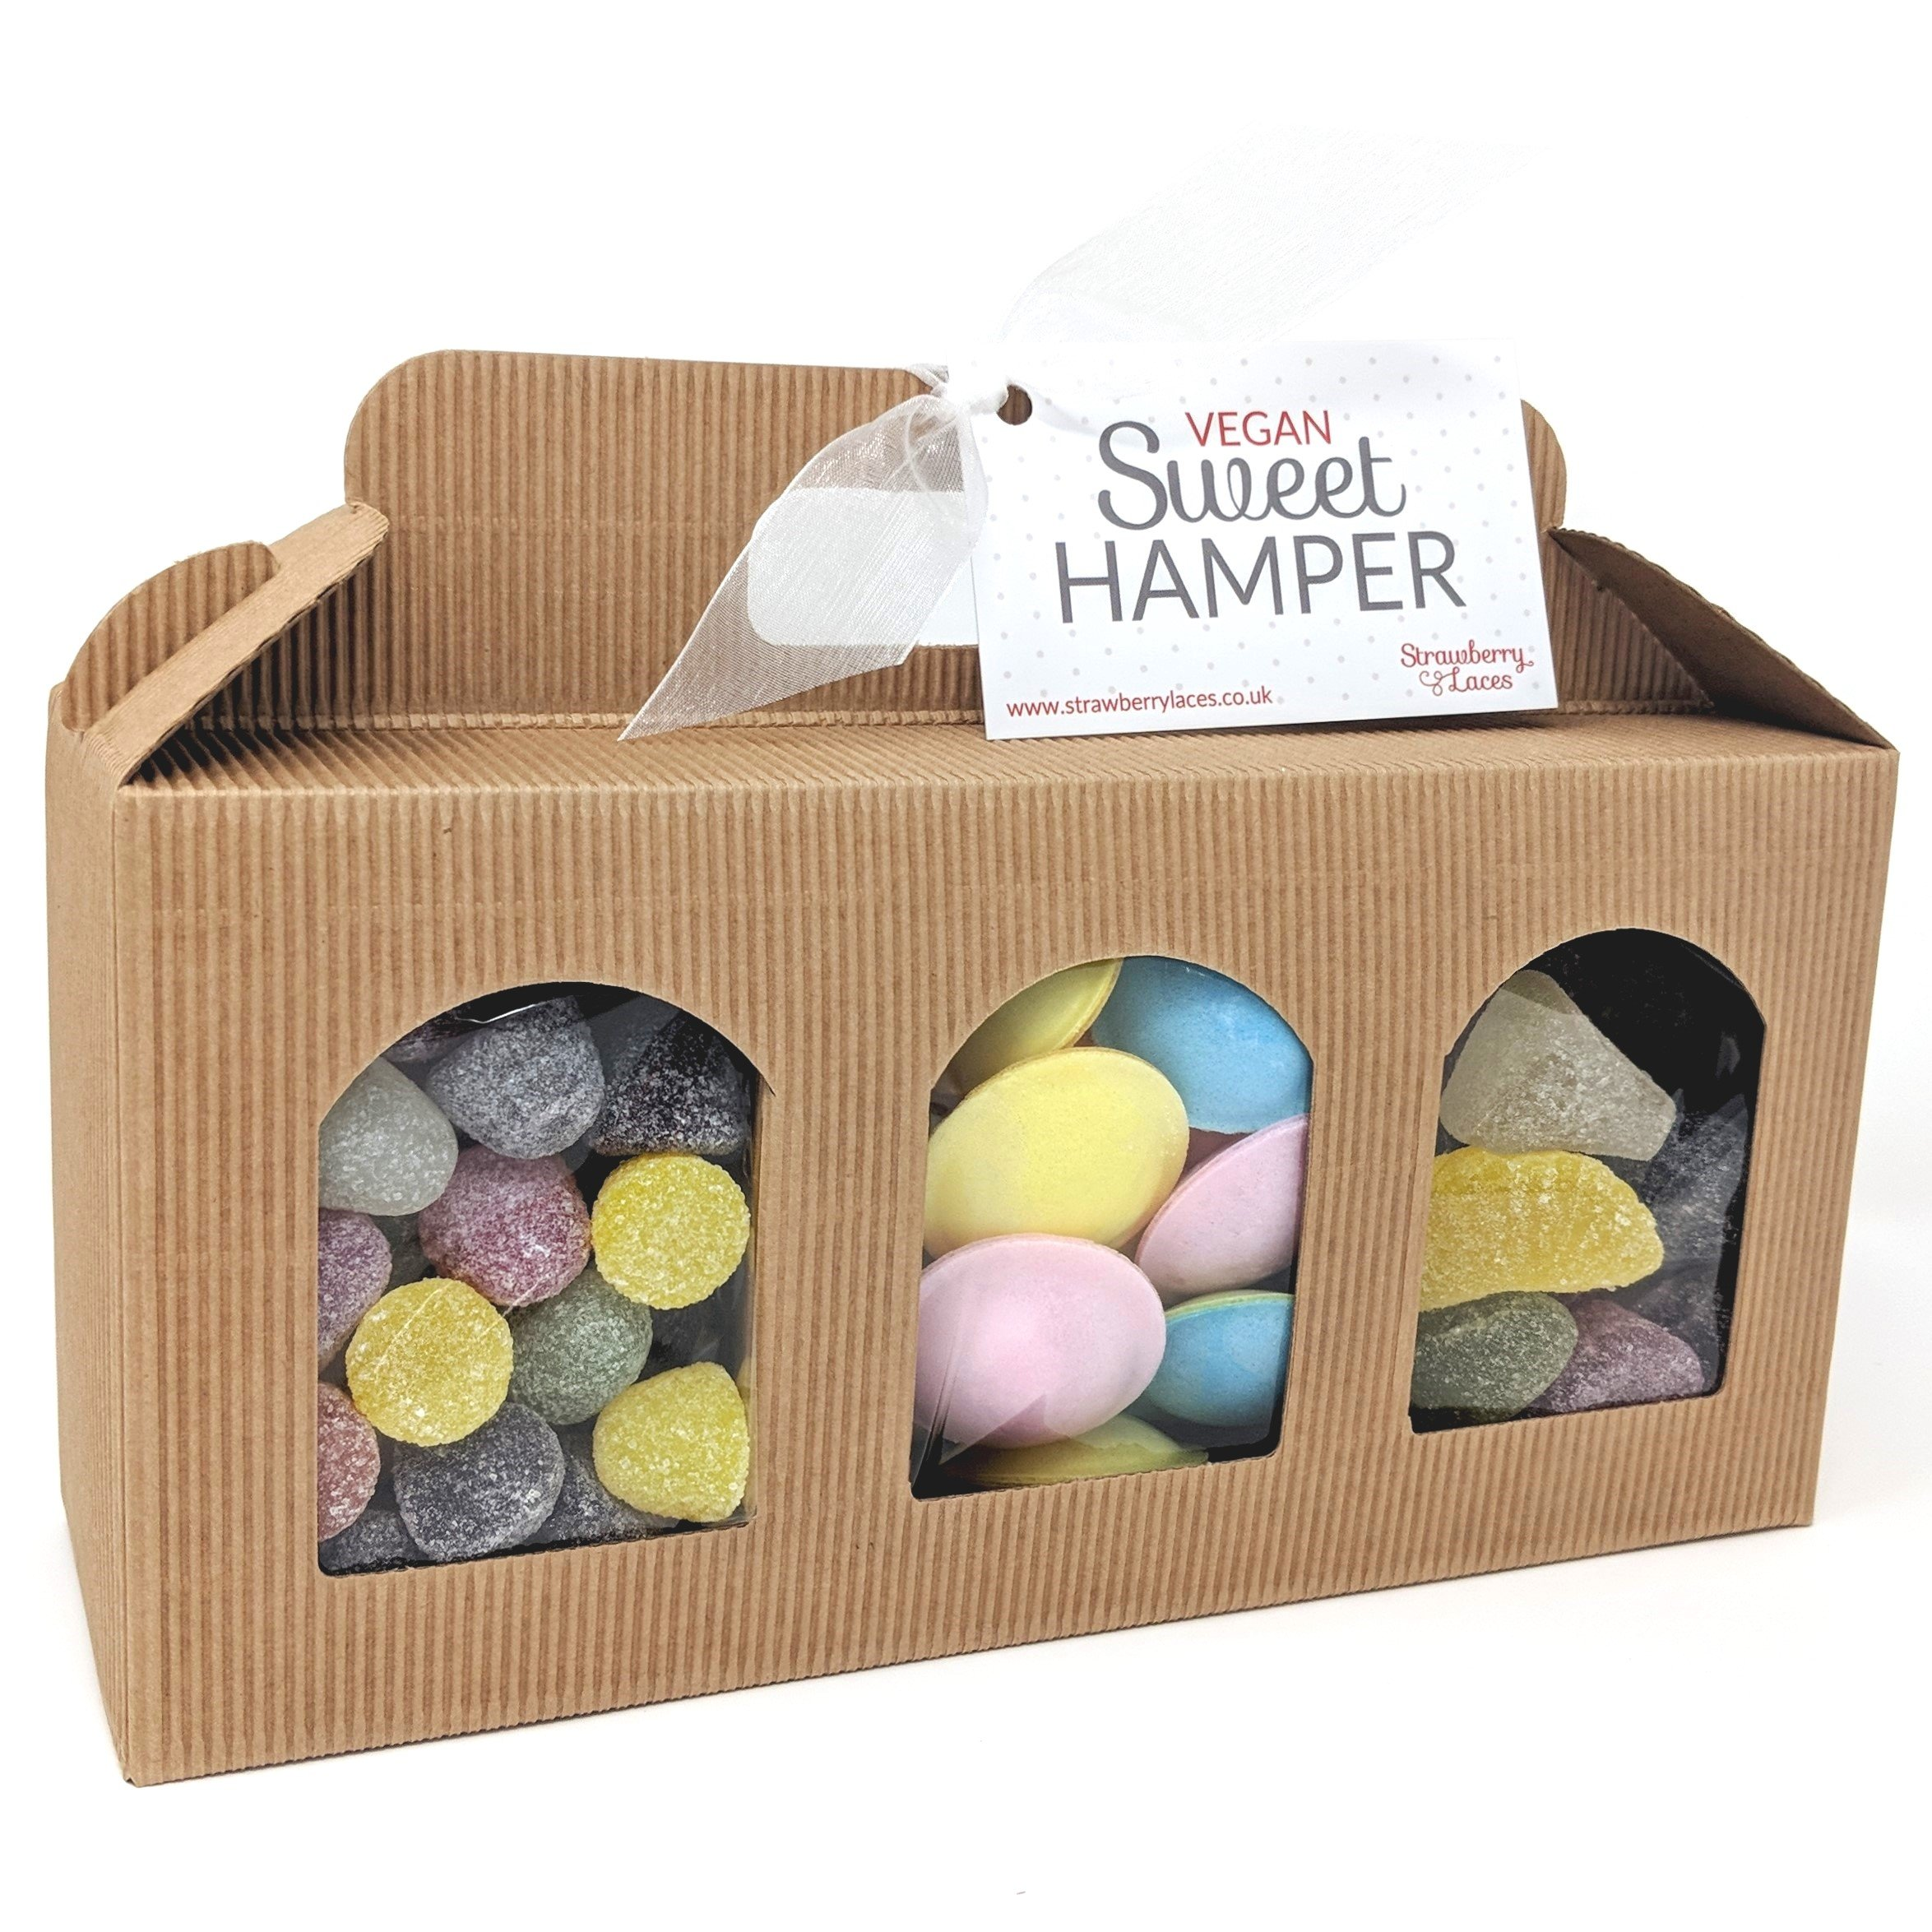 Vegan Sweet Hamper Box Great Vegetarian Gift For Birthday Easter Christmas Etc